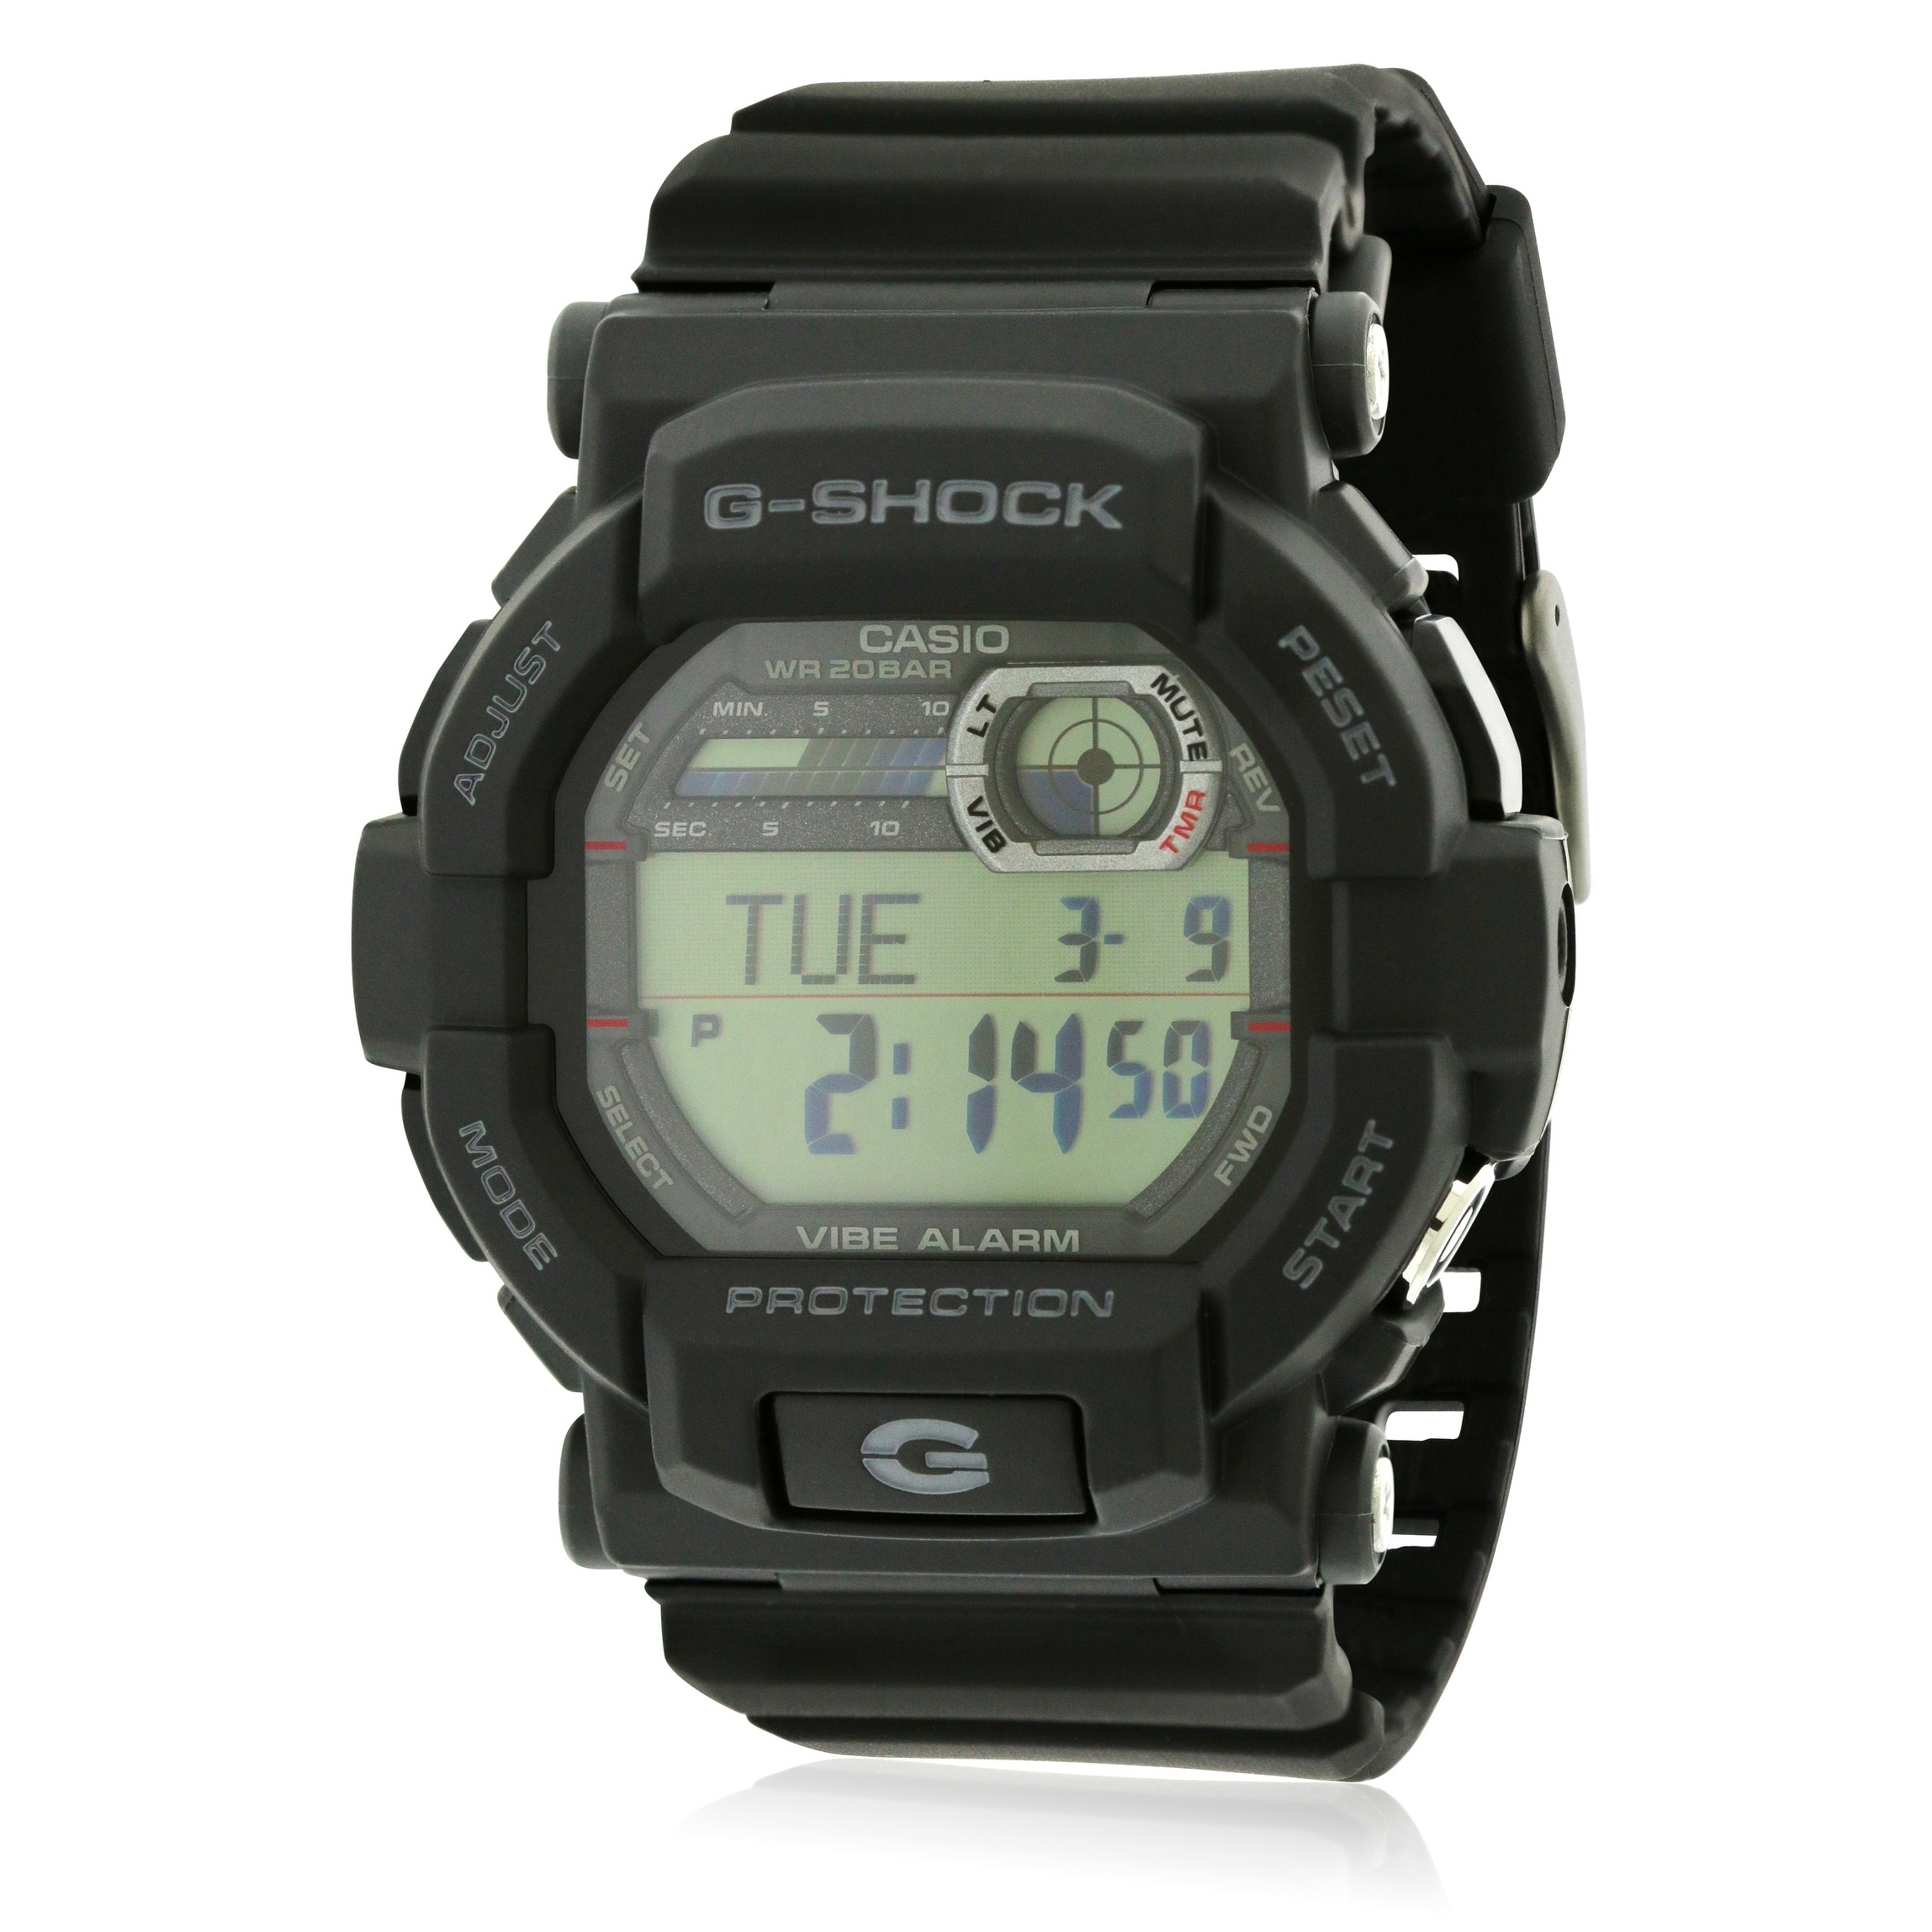 3180a2182 Shop Casio G-Shock Vibration Alarm Mens Watch GD350-1CR - Free Shipping  Today - Overstock - 25451956